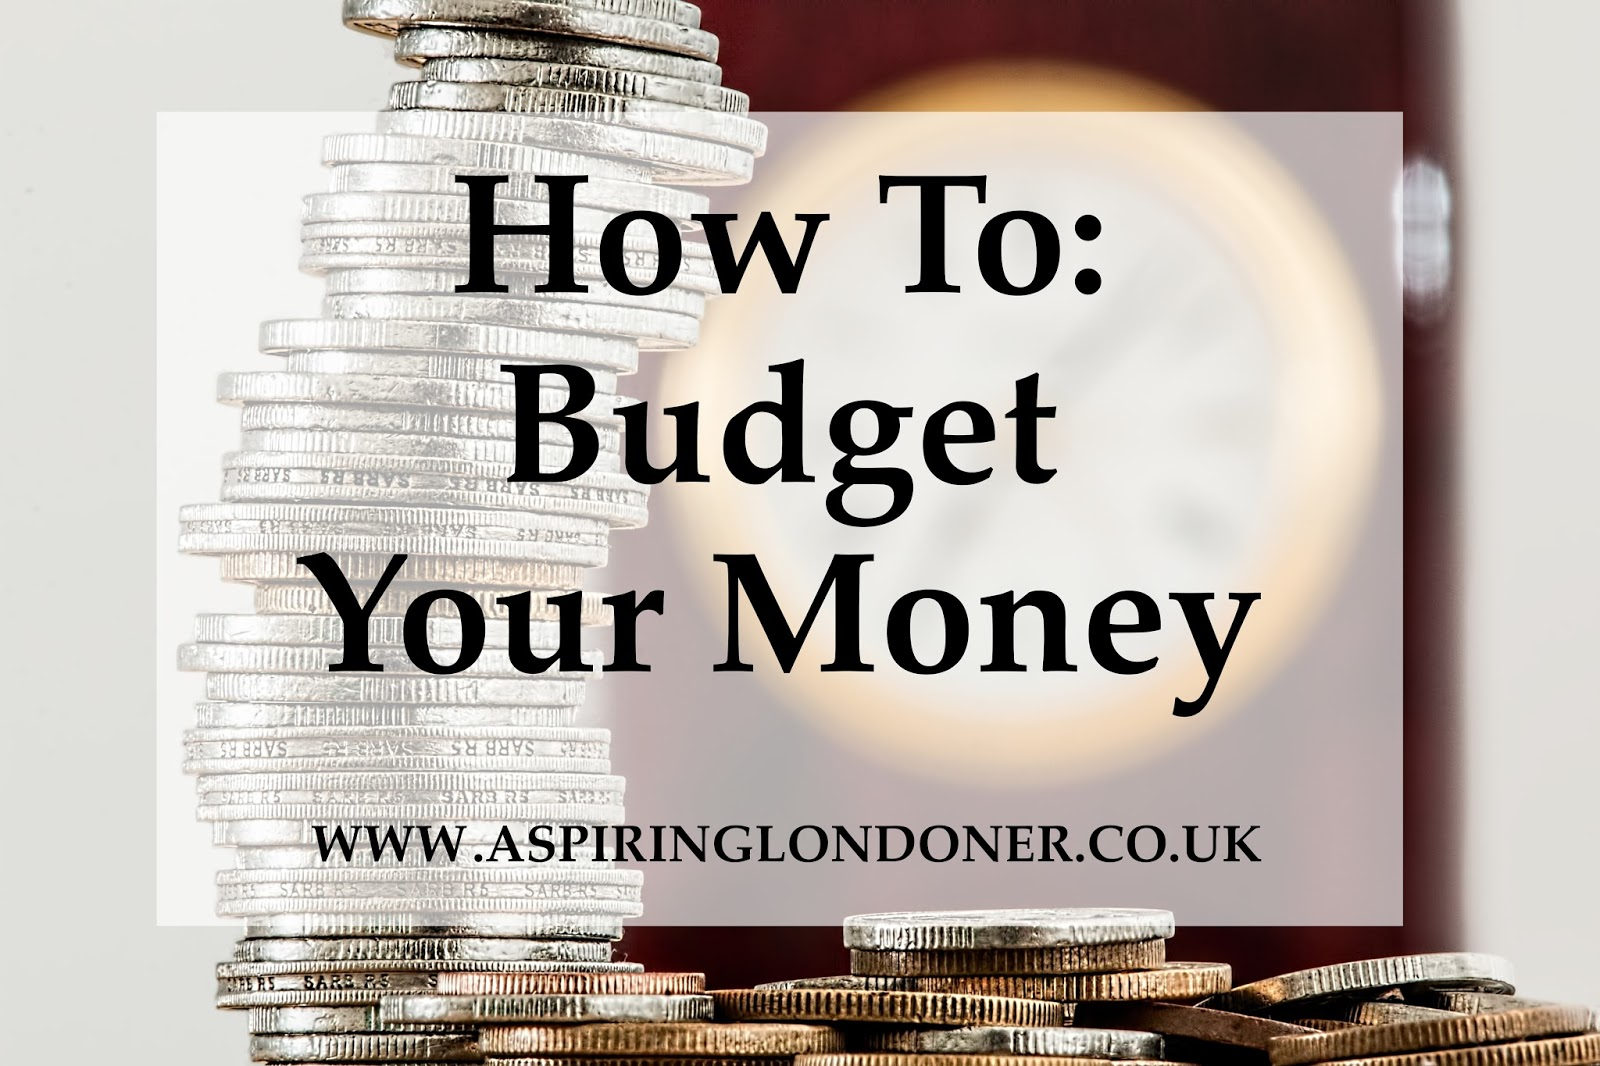 How To Budget Your Money - Aspiring Londoner